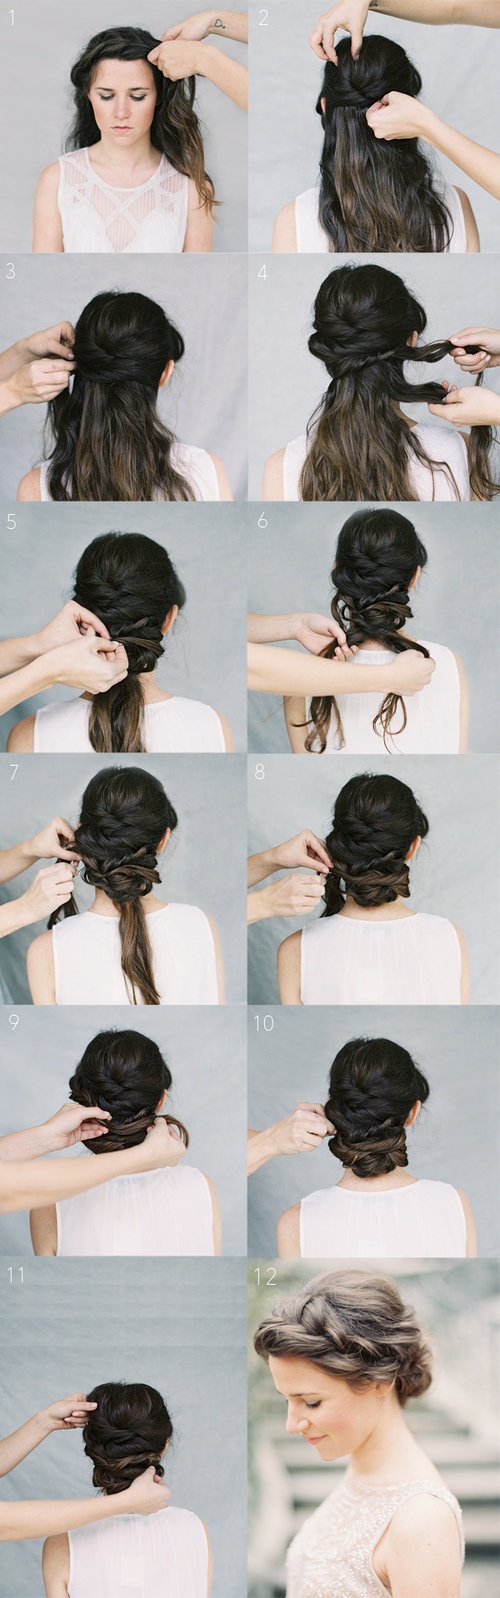 Crown Braid Wedding Hairstyles for Long Hair / Braid Wedding ...